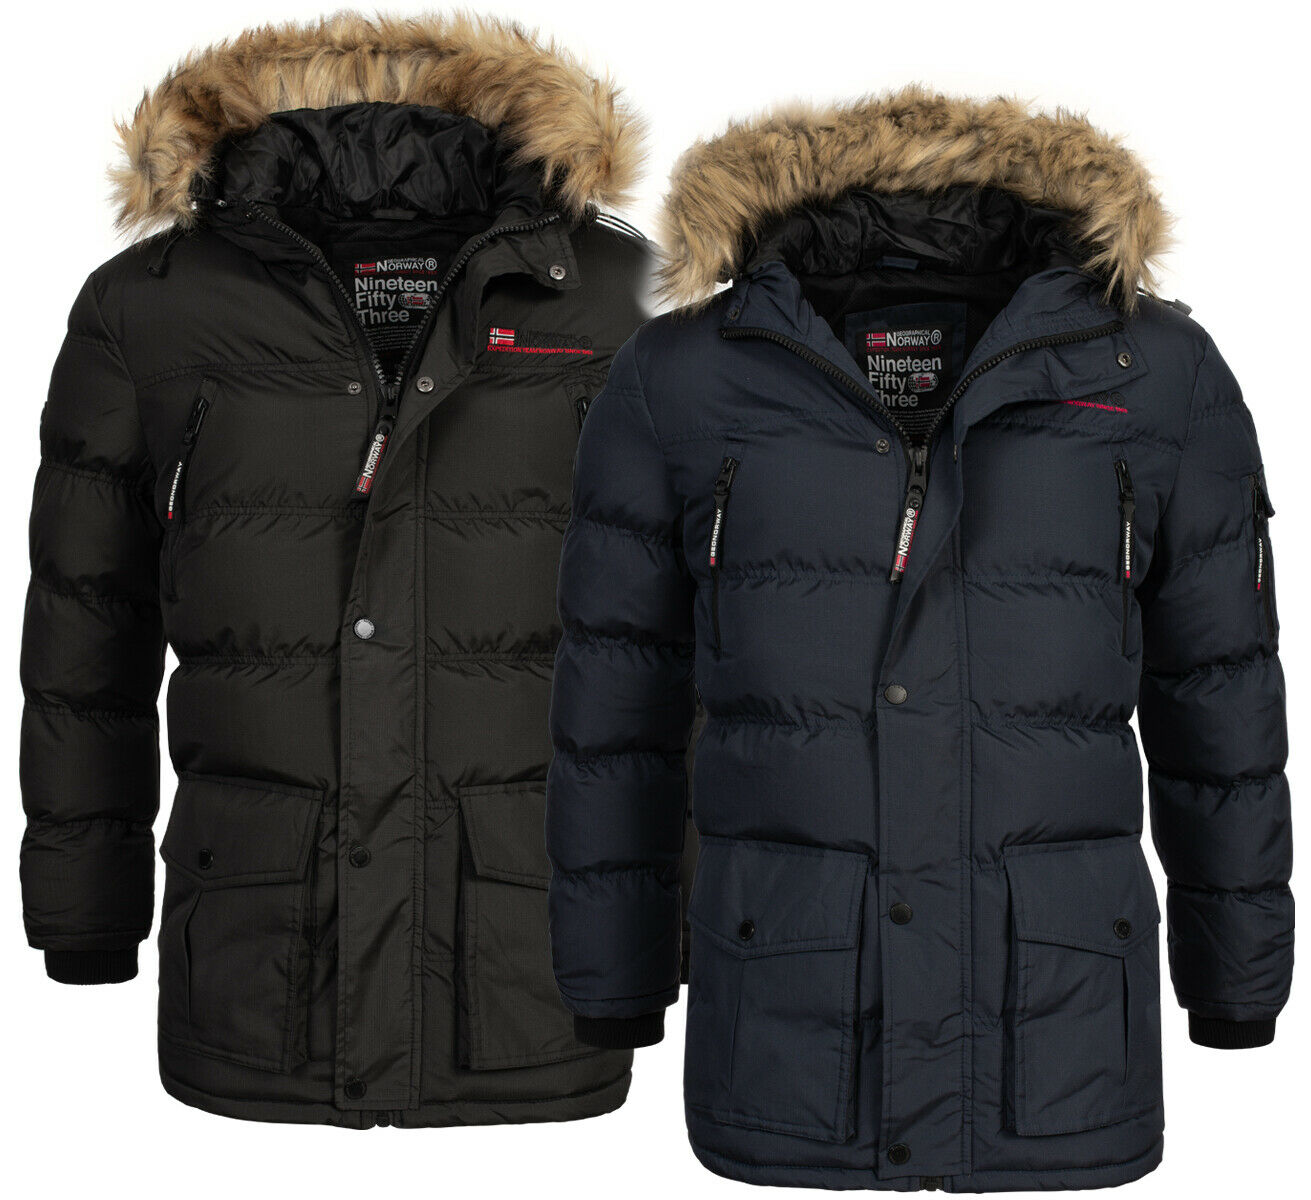 geographical norway sehr warme herren winter jacke outdoor parka anorak mantel eur 99 90. Black Bedroom Furniture Sets. Home Design Ideas